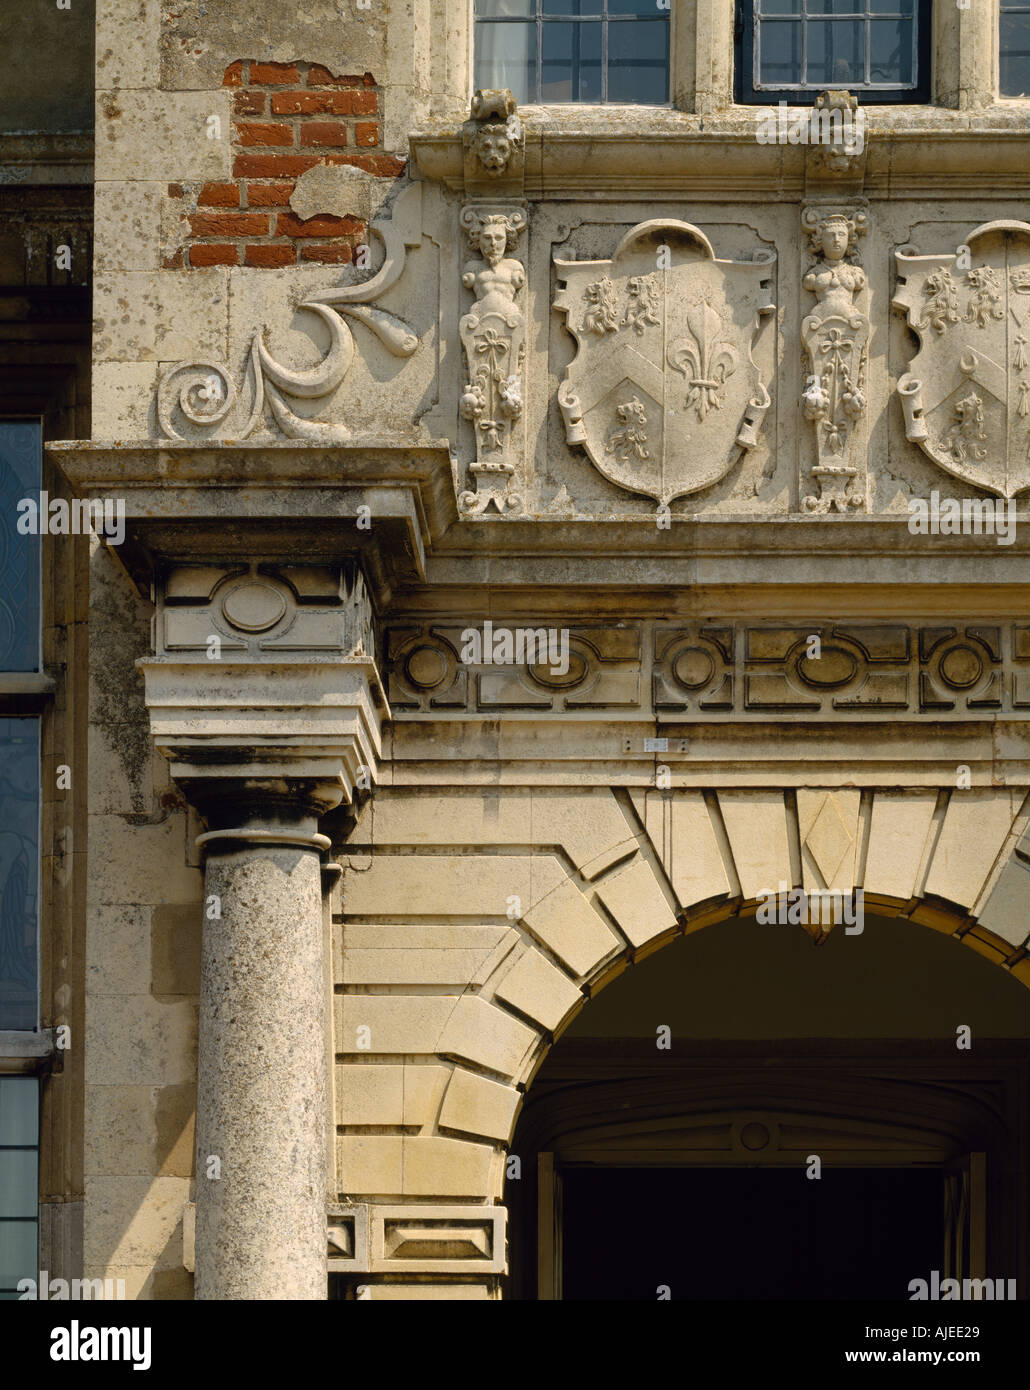 The coat of arms above the entrance belongs to Sir John Wyndham 1558 1645 at Felbrigg Hall Norfolk - Stock Image